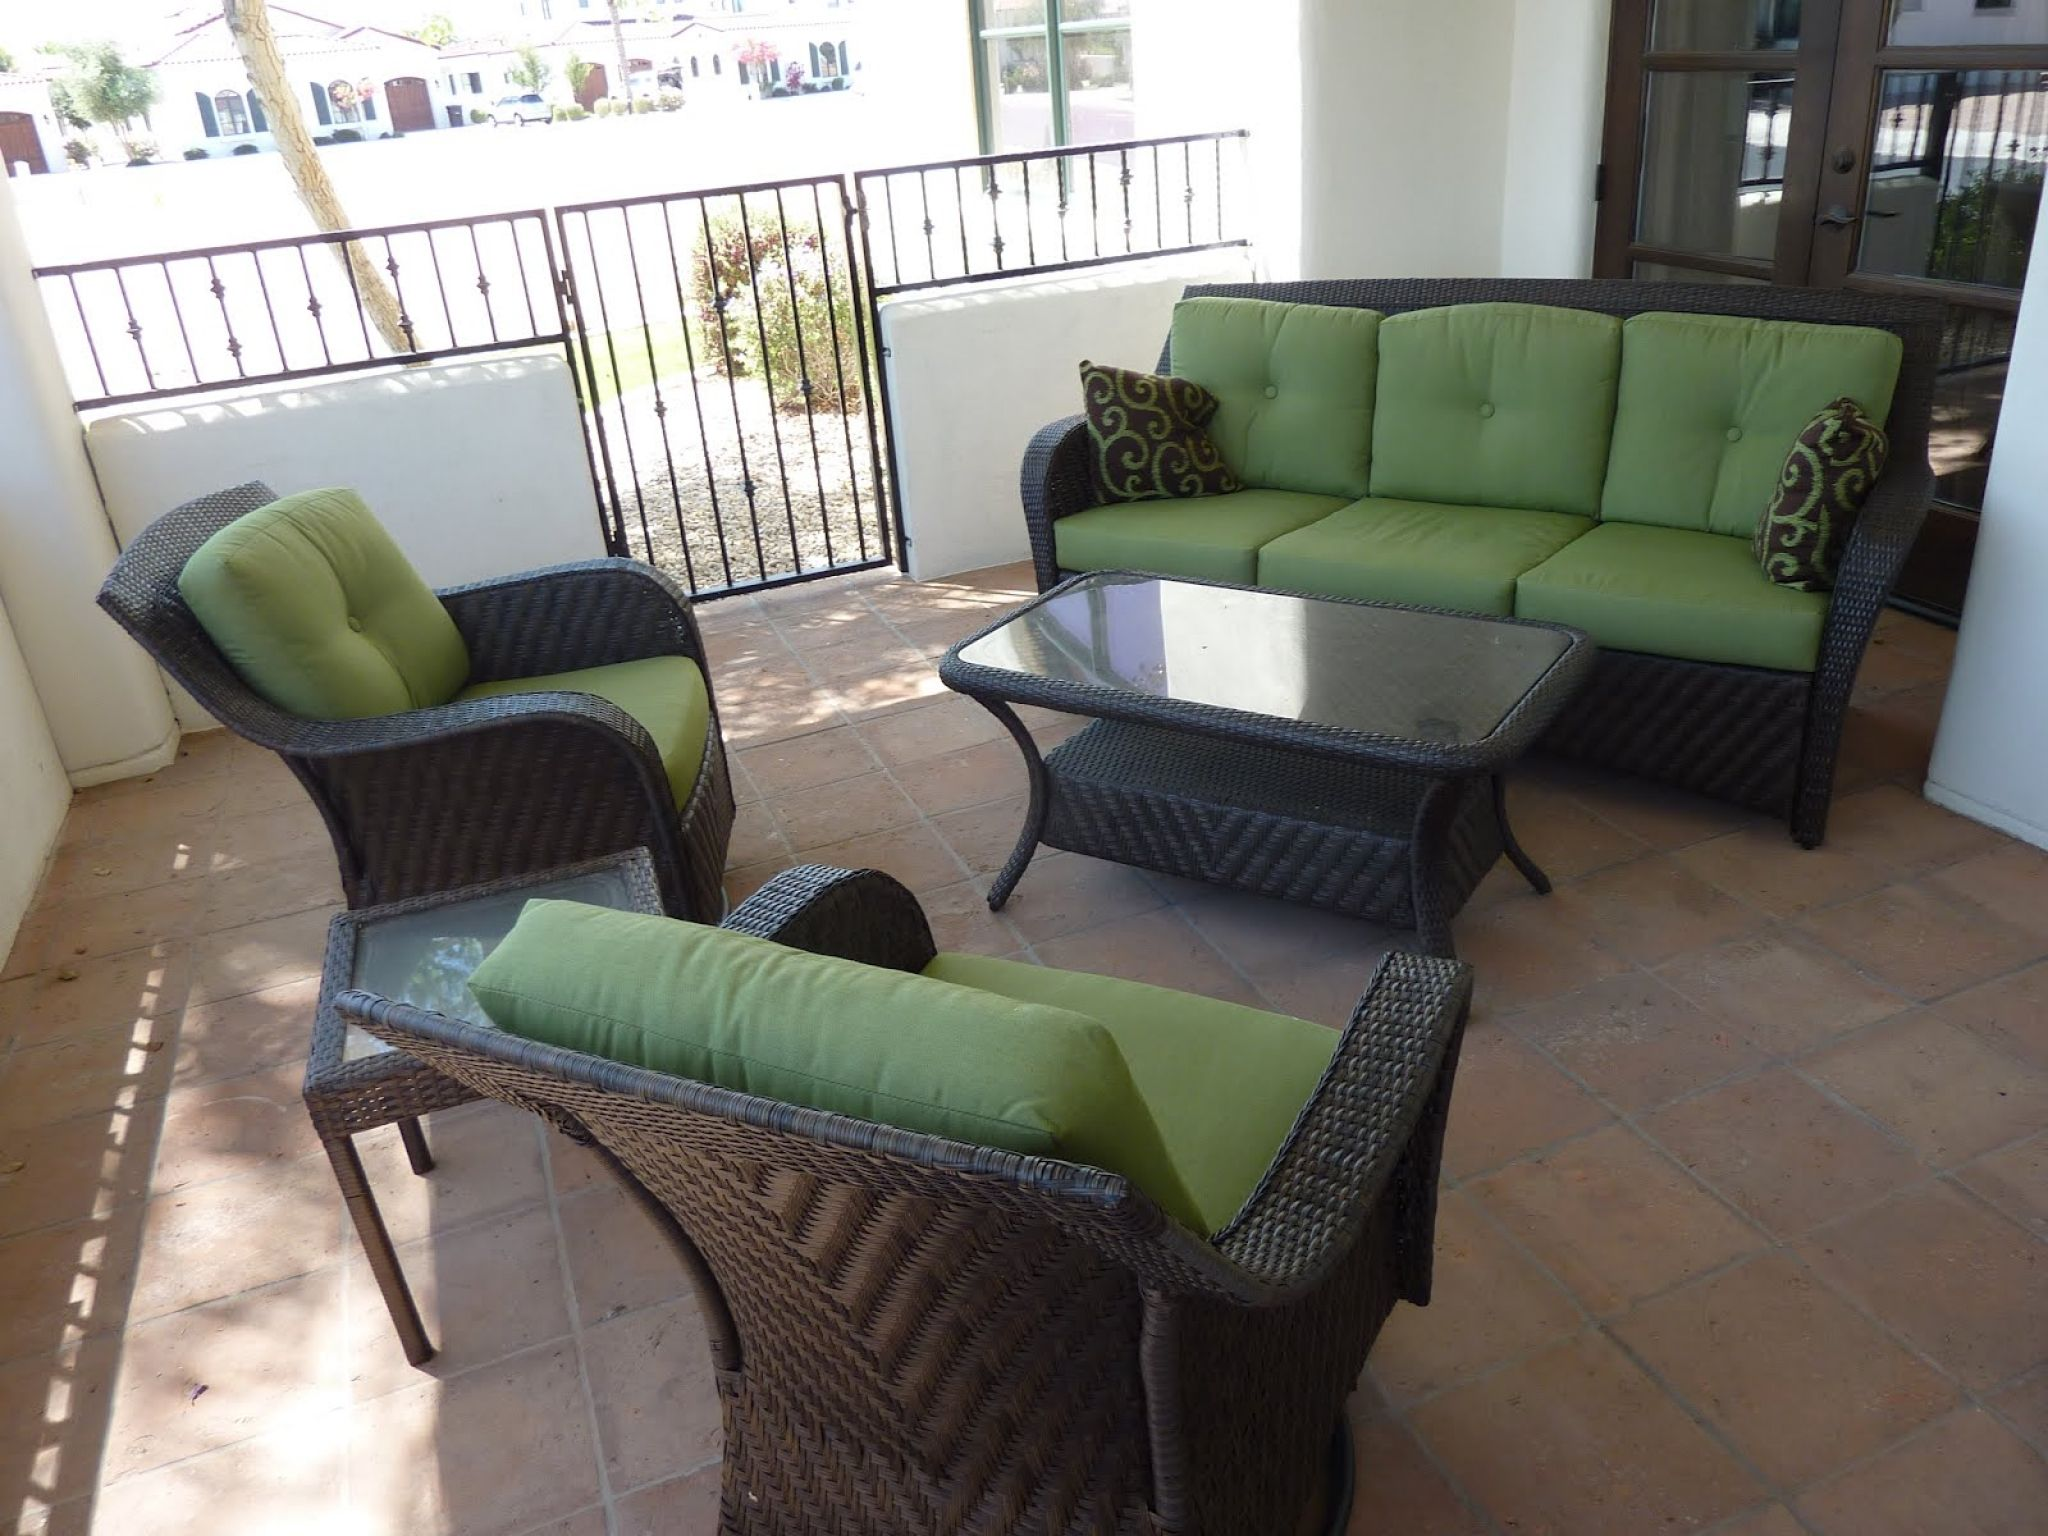 Elegant Outdoor Furniture Covers Reviews   Interior Paint Colors For 2017 Check  More At Http:/